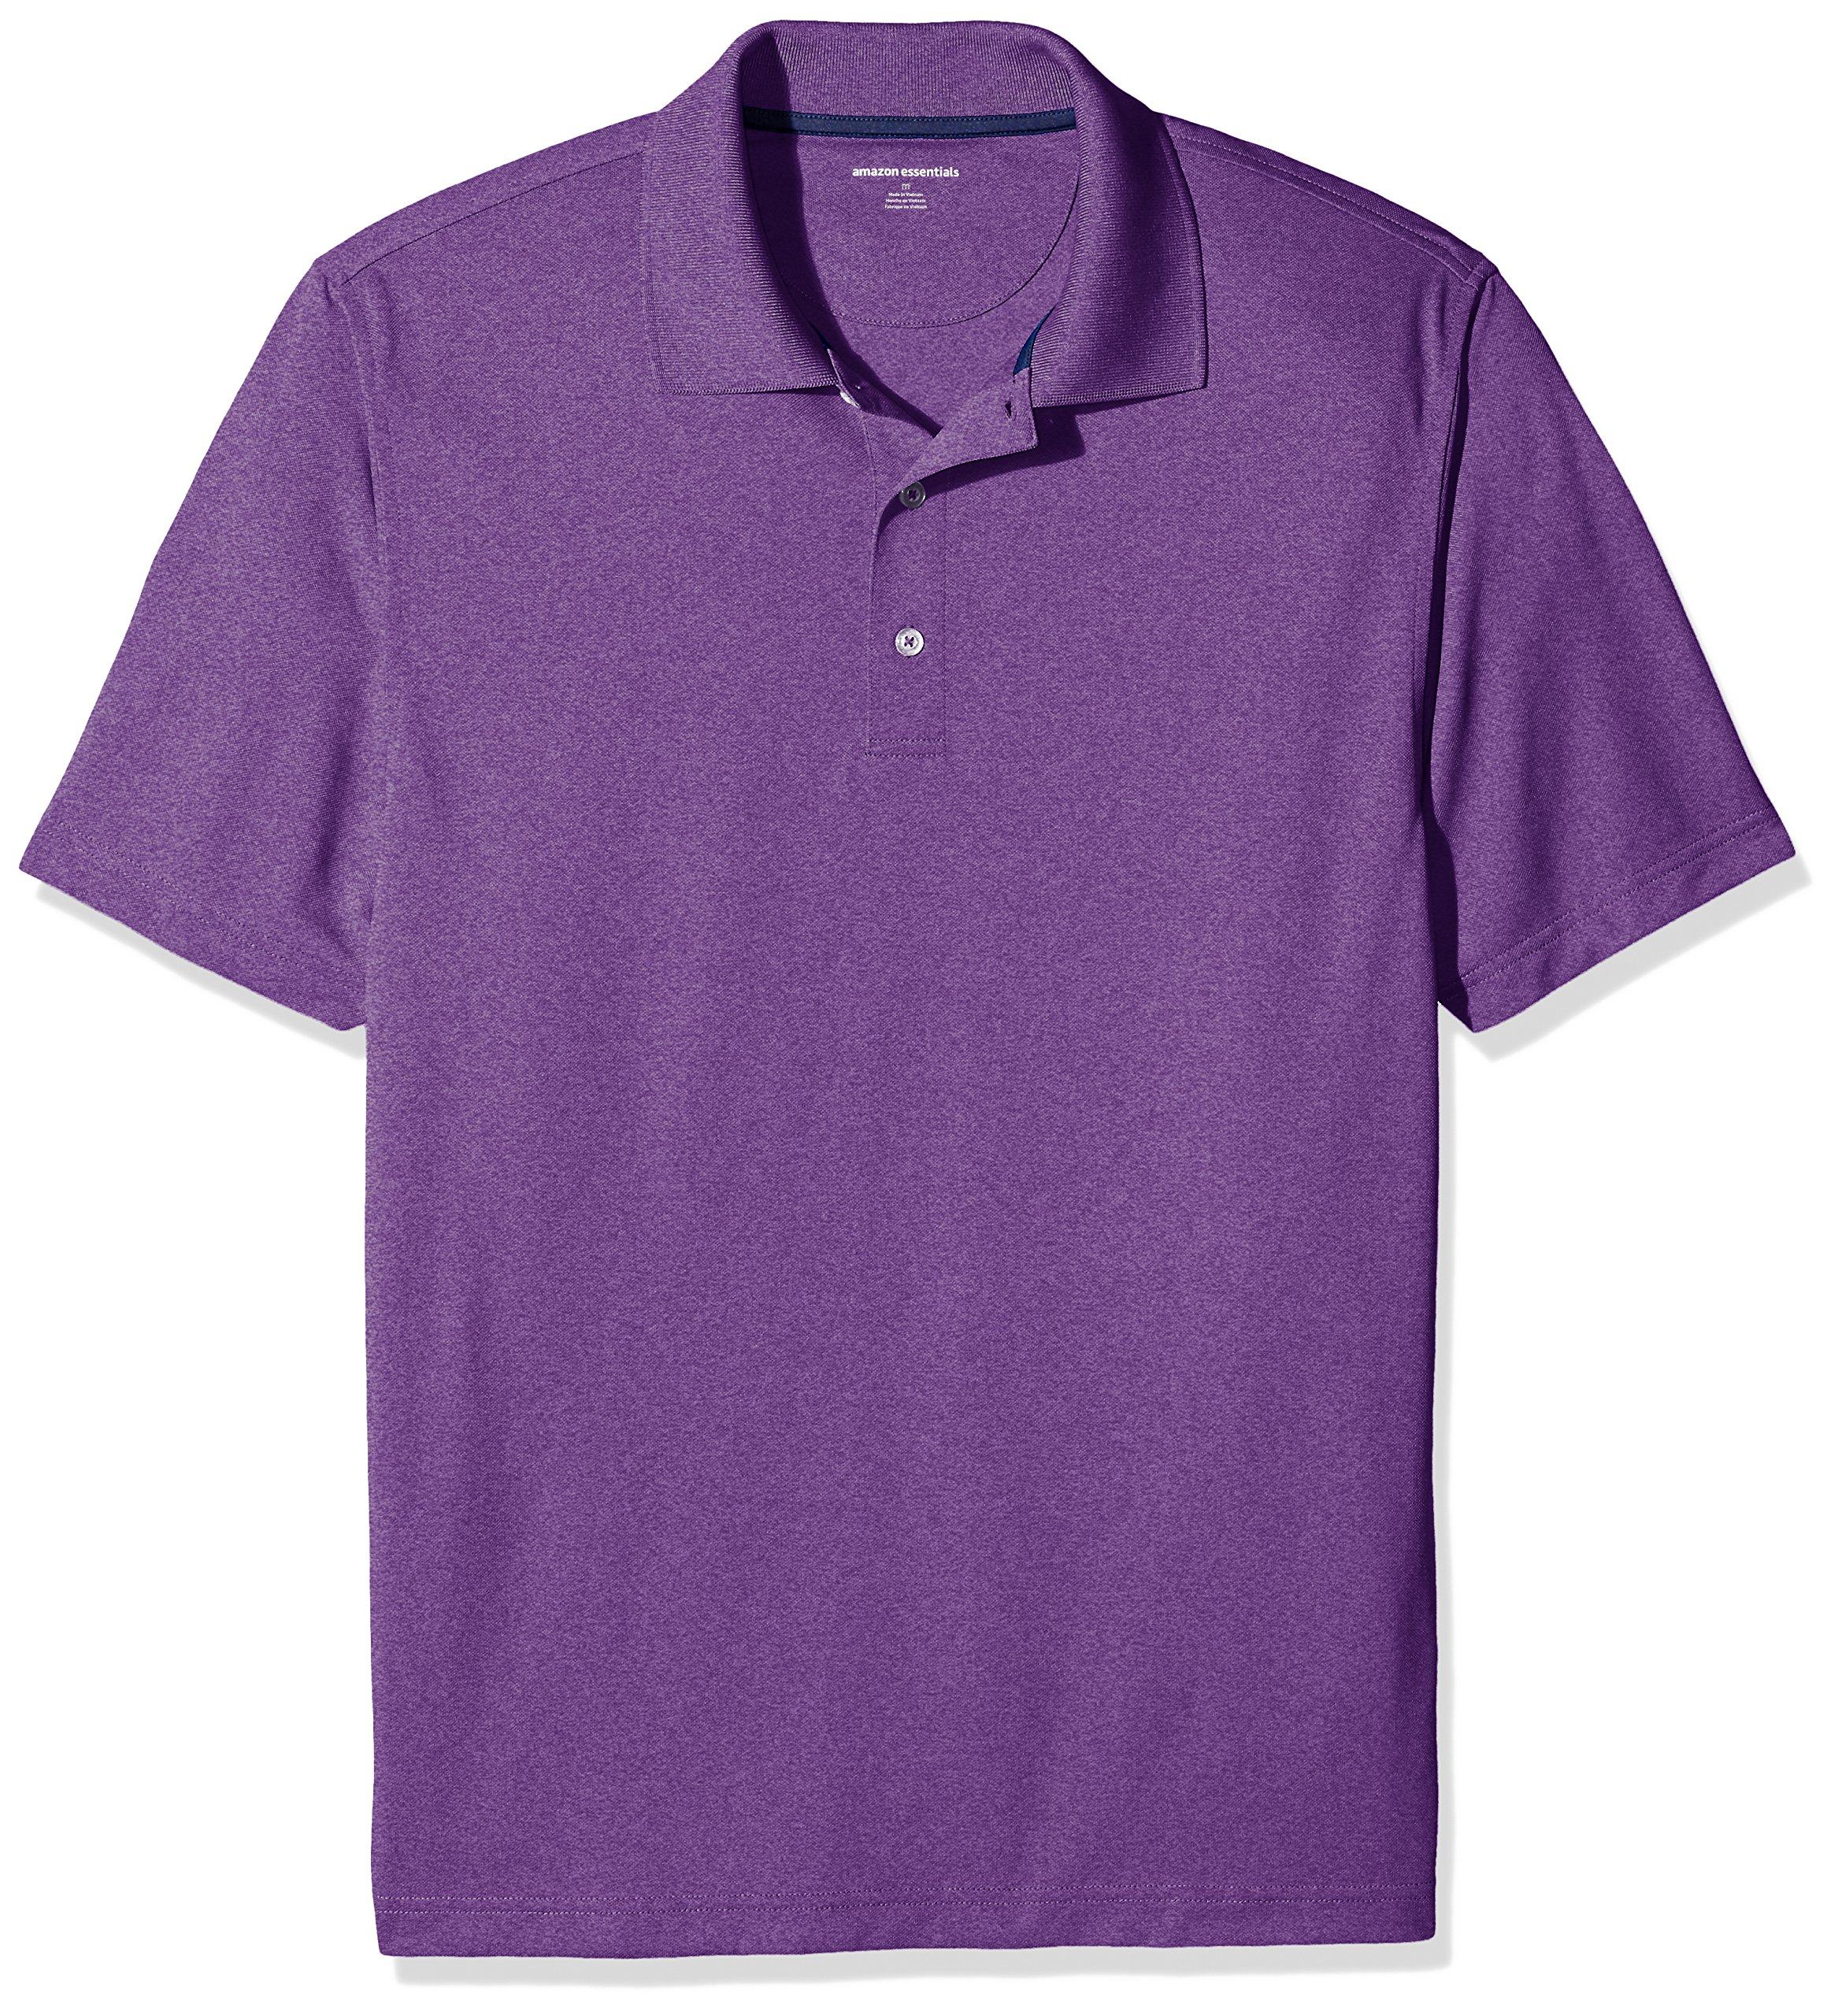 Amazon Essentials Men's Regular-Fit Quick-Dry Golf Polo Shirt, Purple Heather, Small by Amazon Essentials